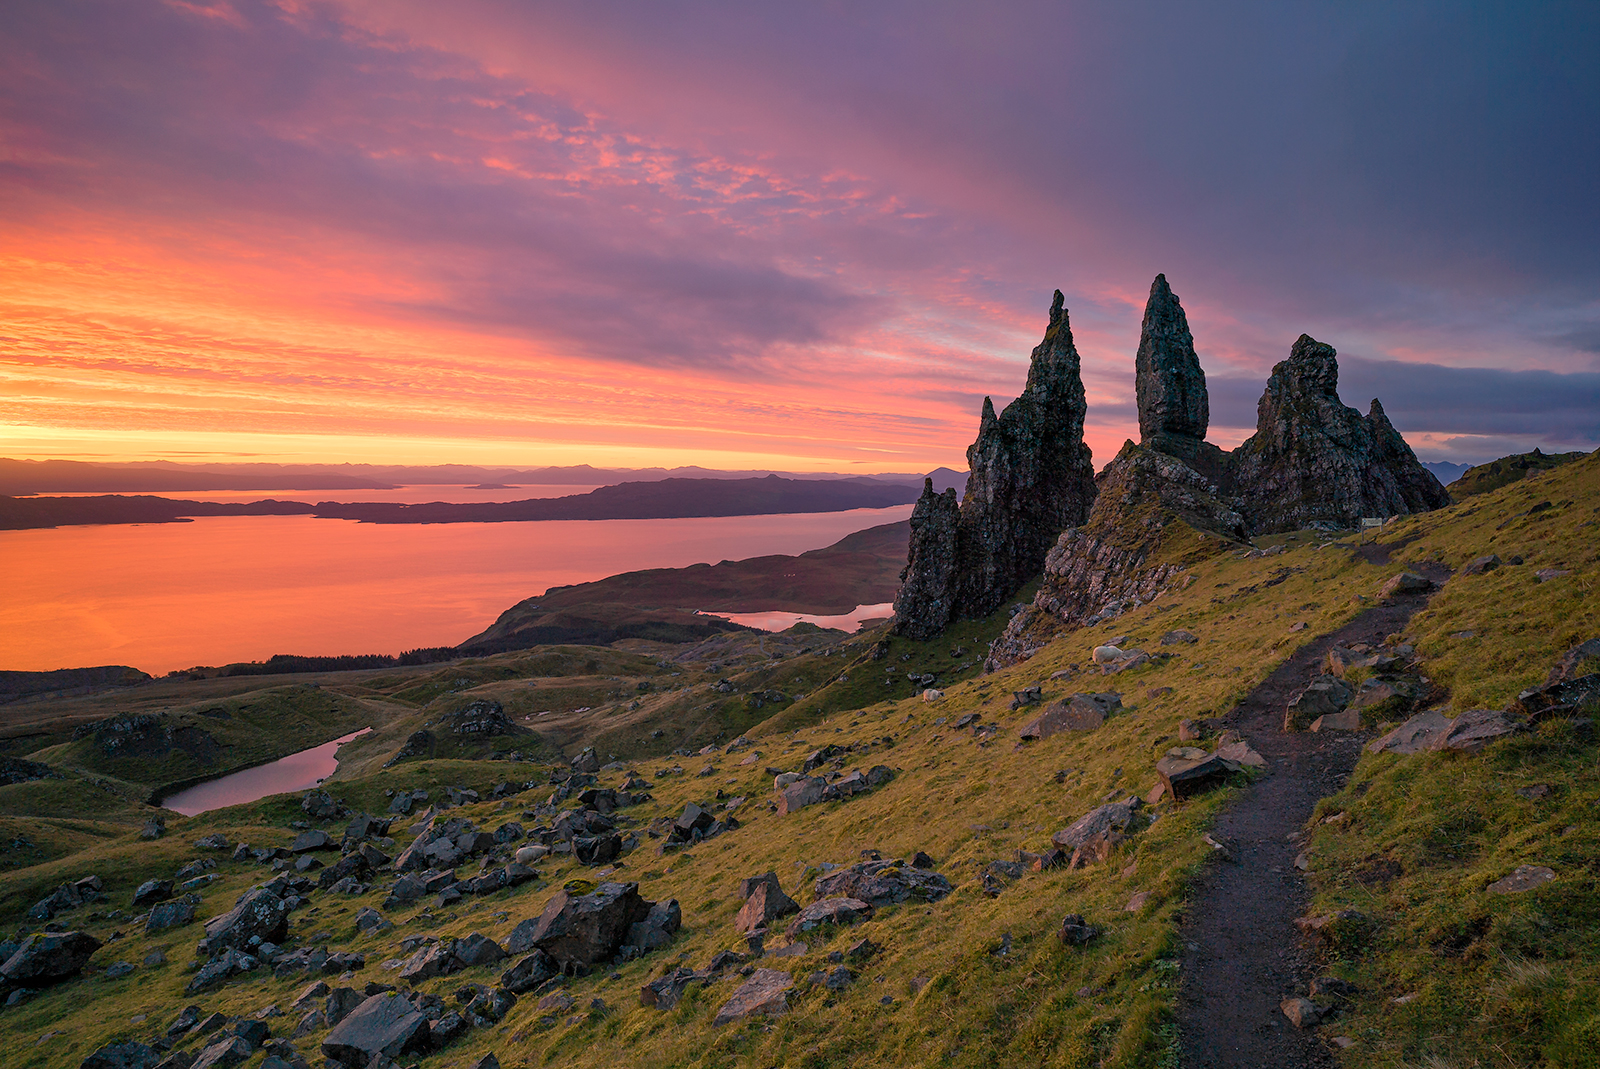 Hike the Old Man of Storr on our Scotland Photography Workshop